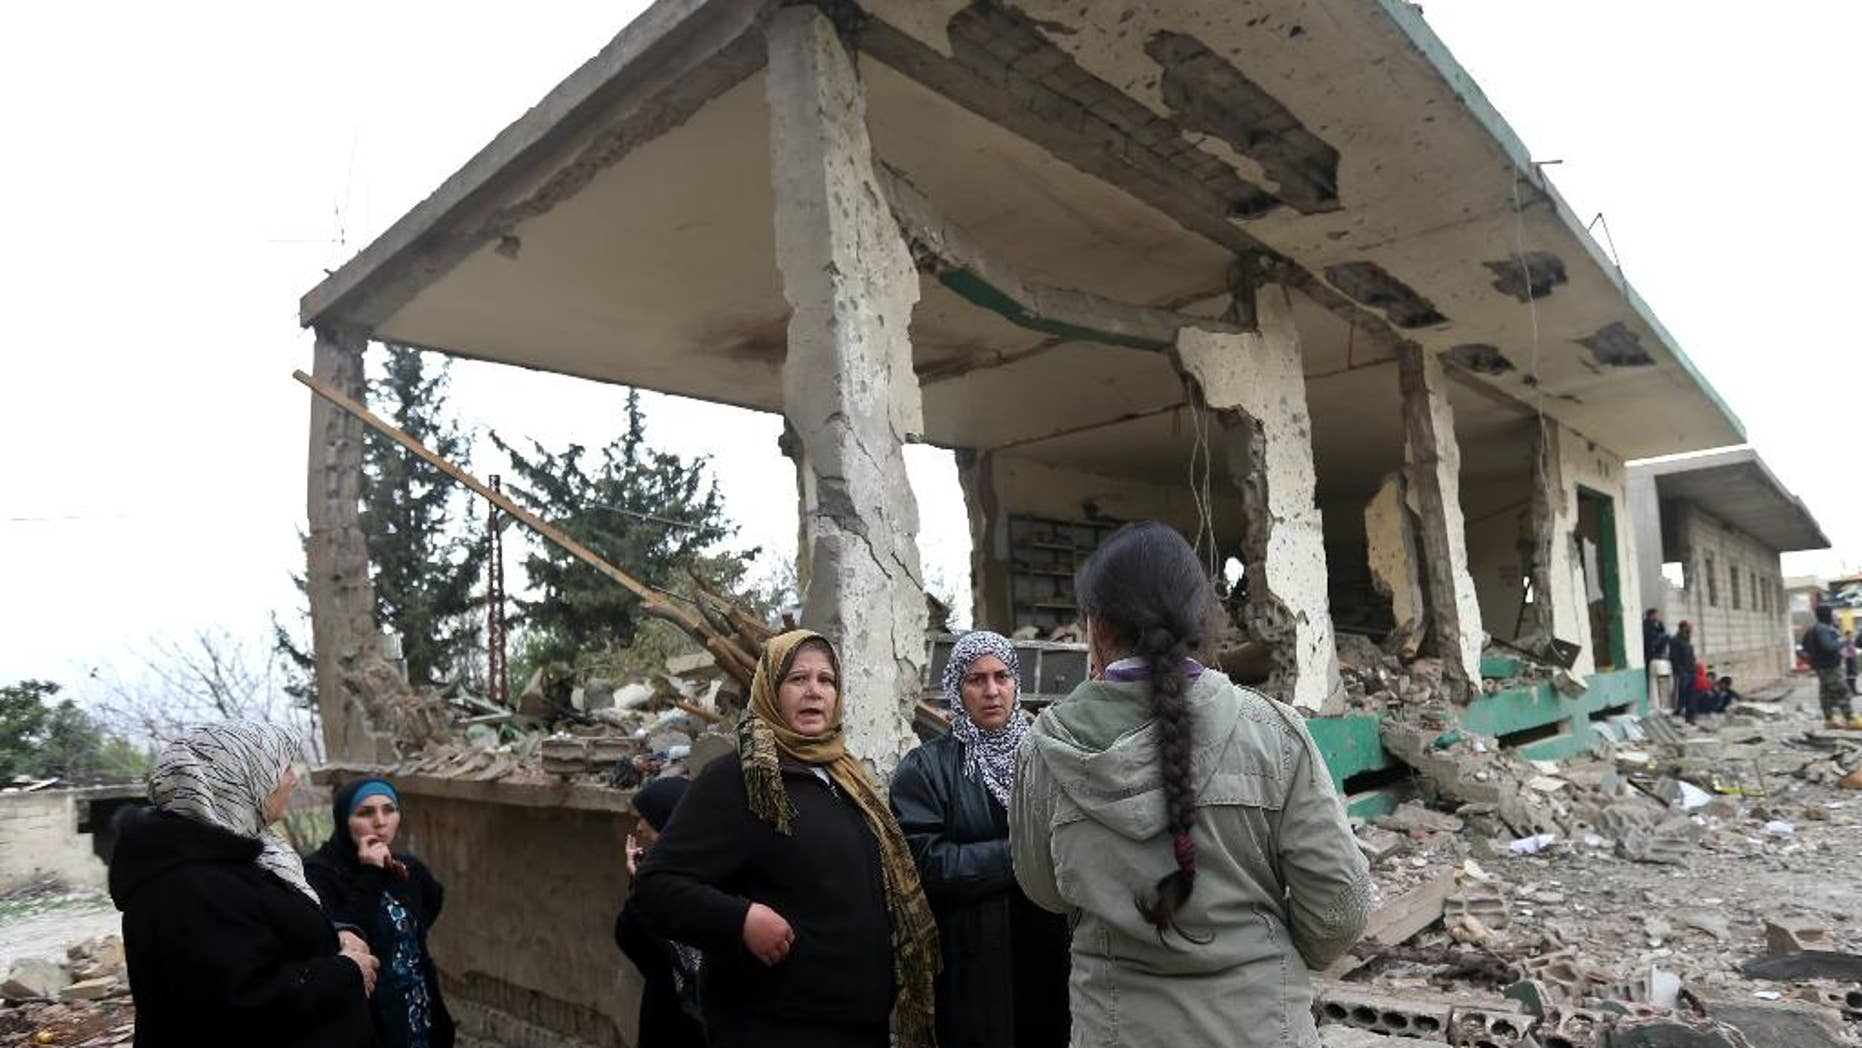 Lebanese women gather in front of damaged shops at the site of a deadly car bombing Sunday night, in the town of Nabi Othman, about 30 kilometers (18 miles) north of Baalbek, northeast Lebanon, Monday March 17, 2014. Lebanese security officials said the explosion killed at least two people and caused panic and massive destruction in the Hezbollah stronghold, which has a sizable Christian population in addition to Shiites. The civil war in neighboring Syria already has ignited polarizing sectarian tensions between Lebanon's Sunnis and Shiites. (AP Photo/Hussein Malla)